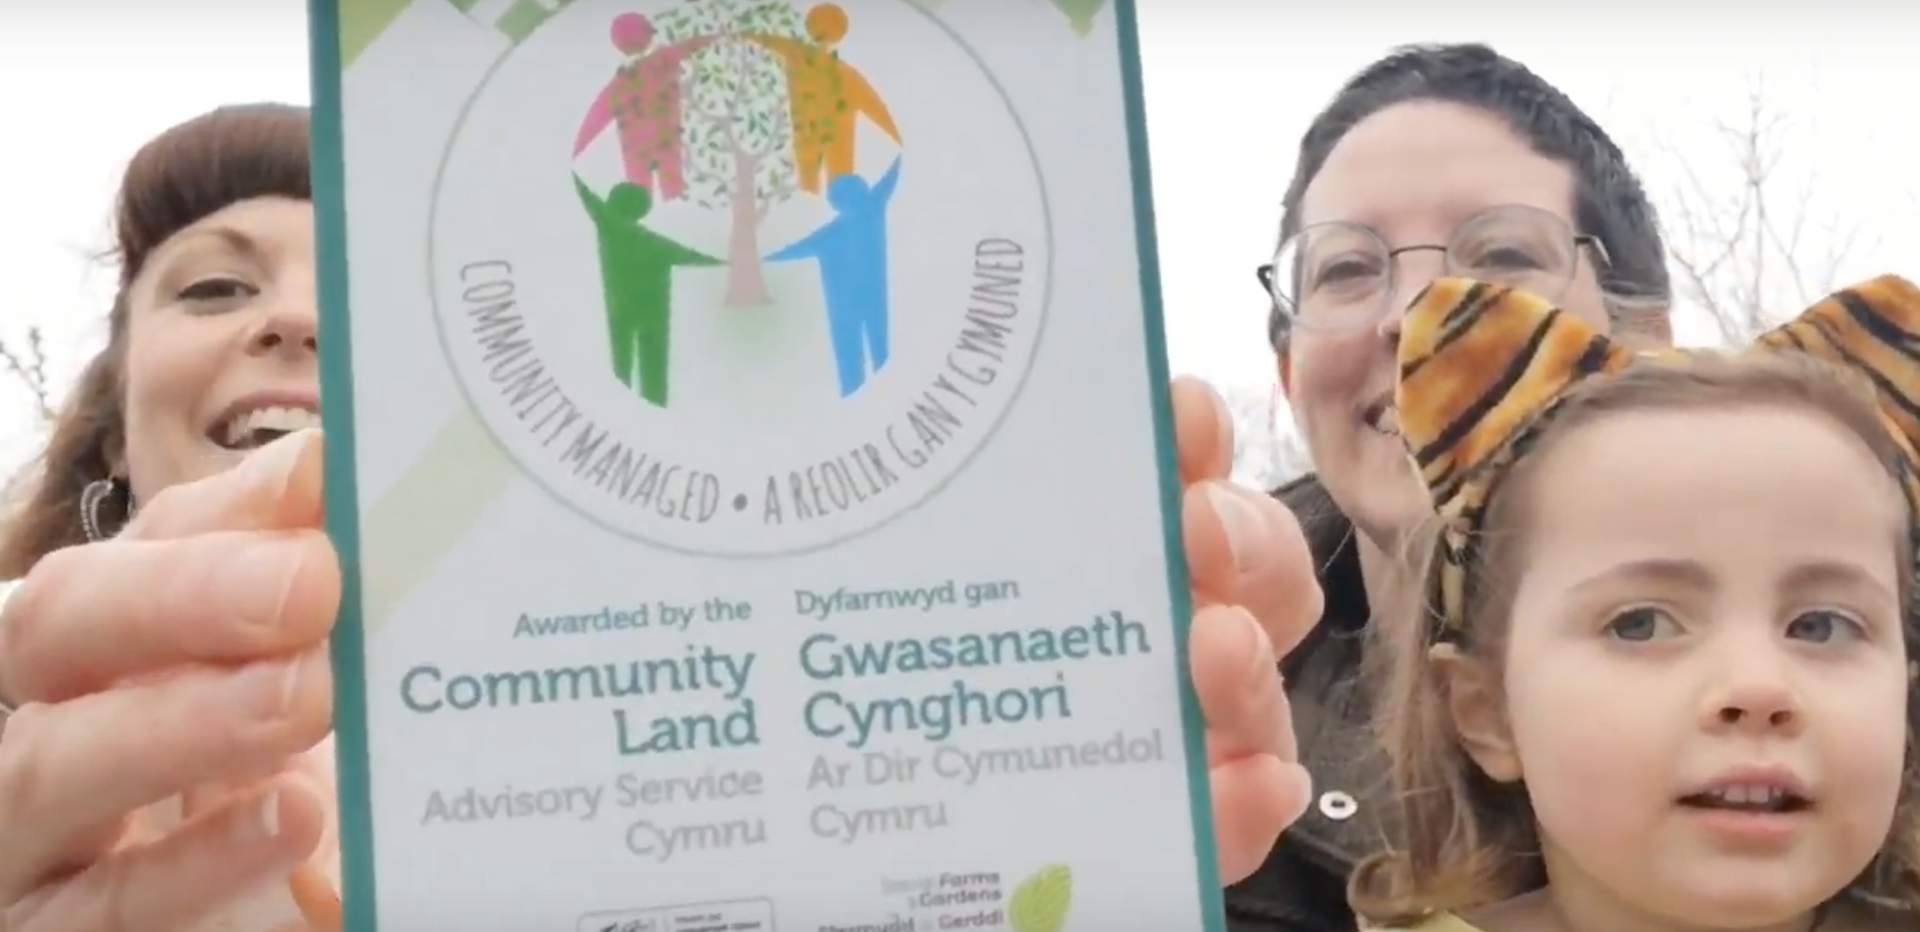 In February 2019 we were thrilled to recieve a community land management award from CLAS in recognition of the work and time taken to secure the site for the community.   We got a plaque and everything!